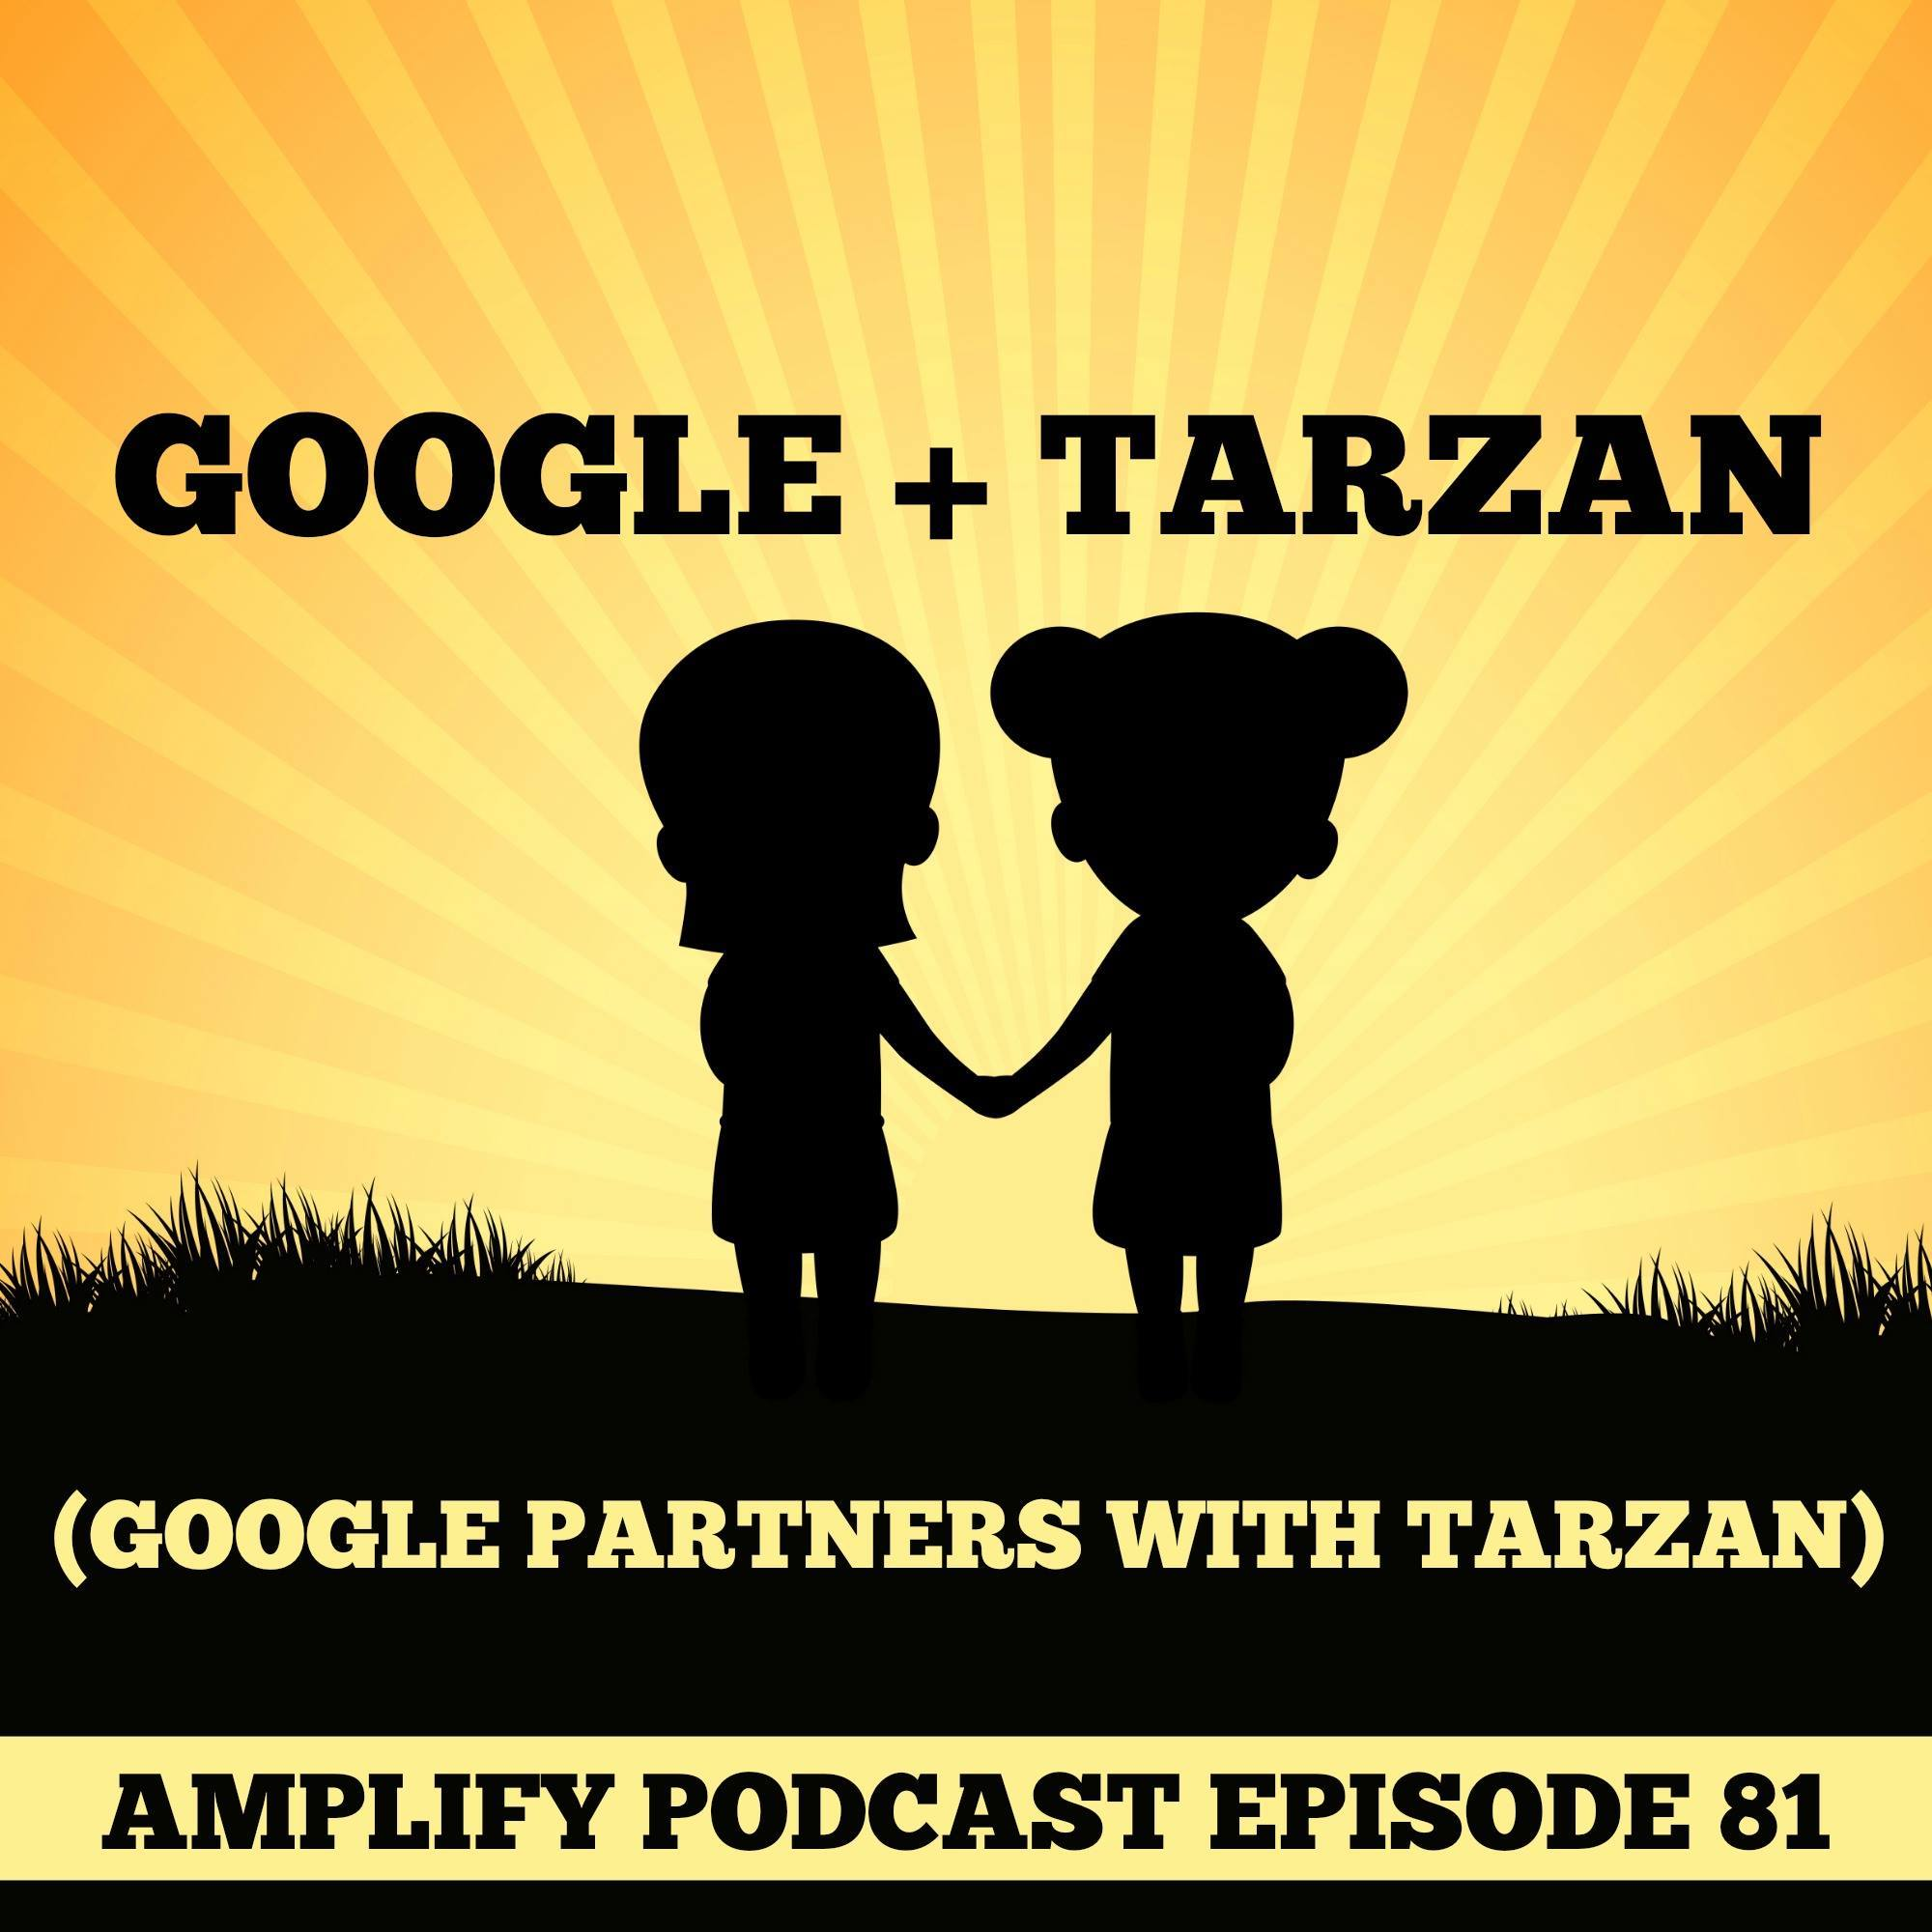 Google and Tarzan